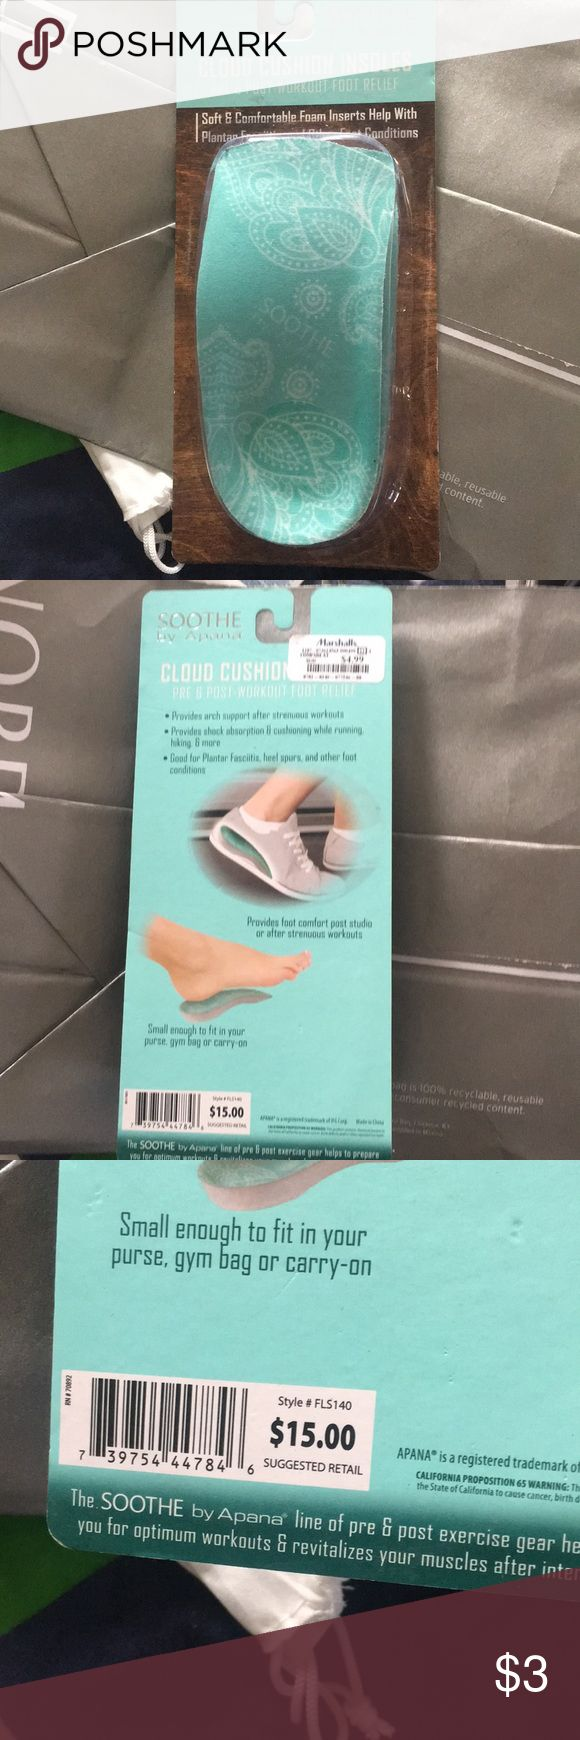 Insoles Insole Things To Sell Women Shopping [ 1740 x 580 Pixel ]